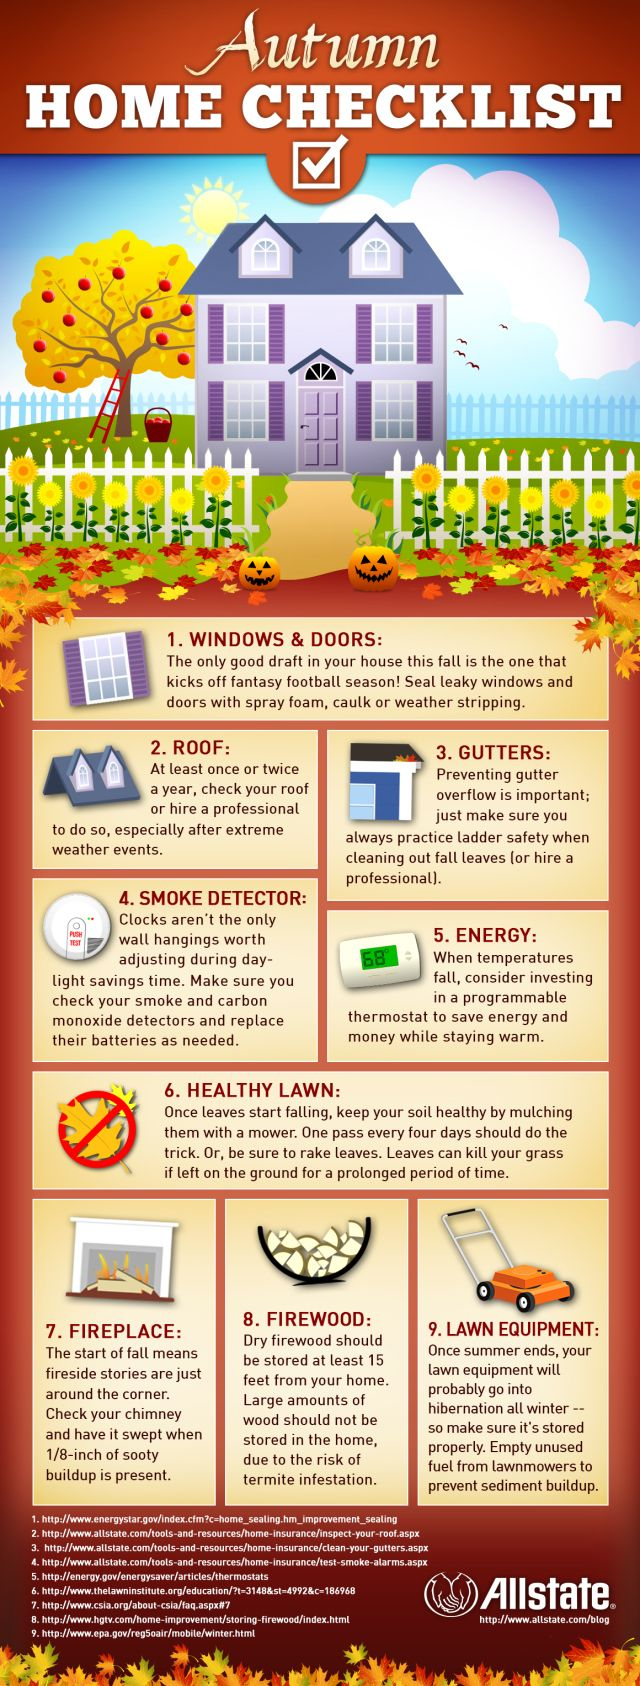 135 best Home Maintenance images on Pinterest | Cleaning, Cleaning ...